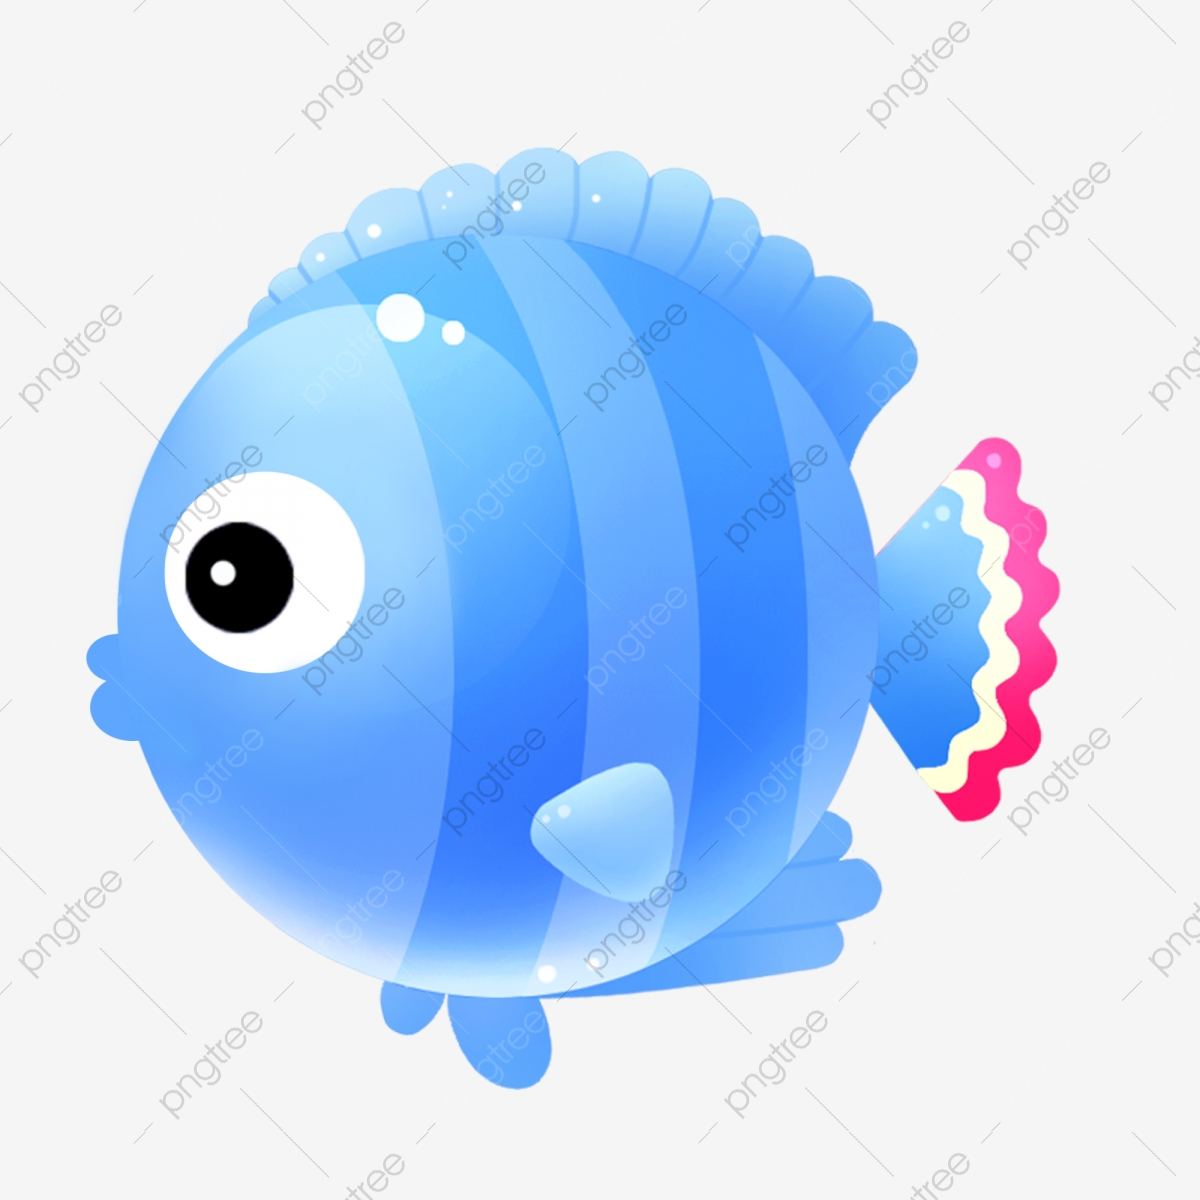 Fish Small Fish Hand Drawn Fish Cartoon Fish Cute Fish Blue Fish Cartoon Png Transparent Clipart Image And Psd File For Free Download